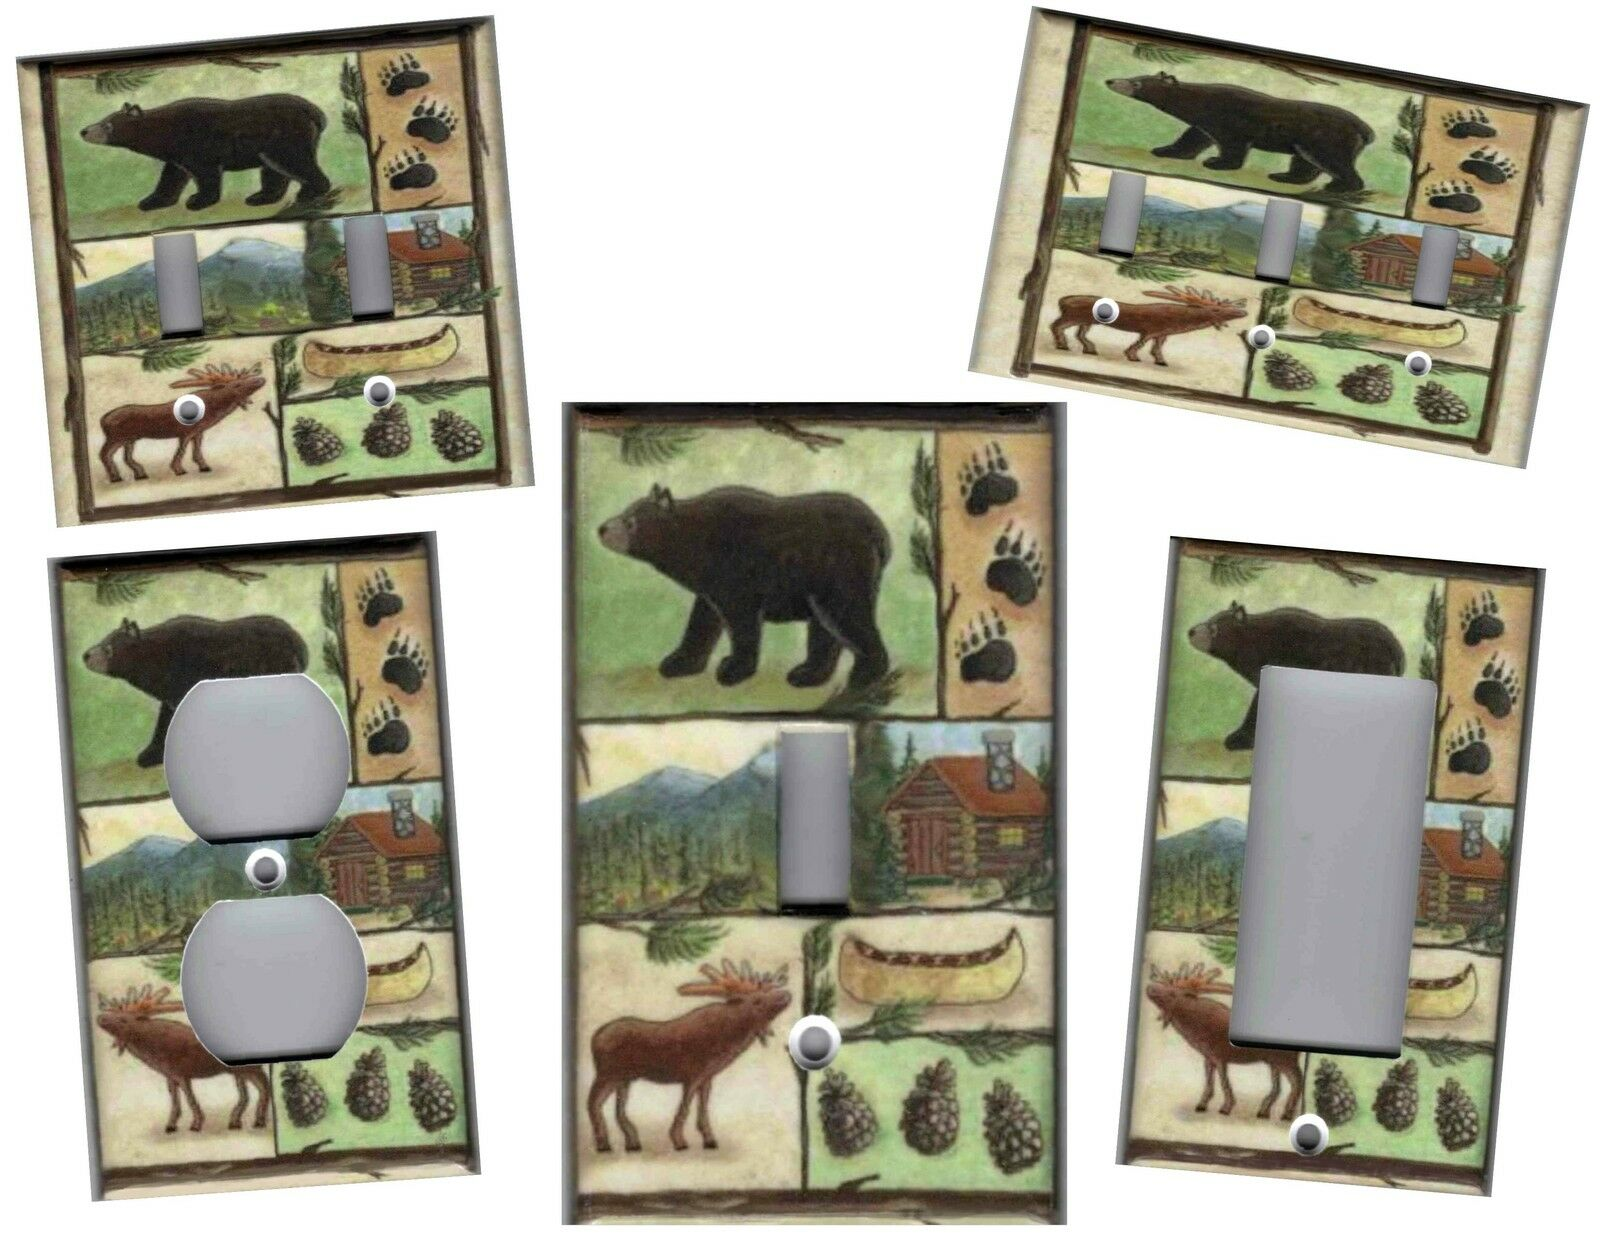 BEAR MOOSE CABIN RUSTIC HOME DECOR LIGHT SWITCH PLATES AND O